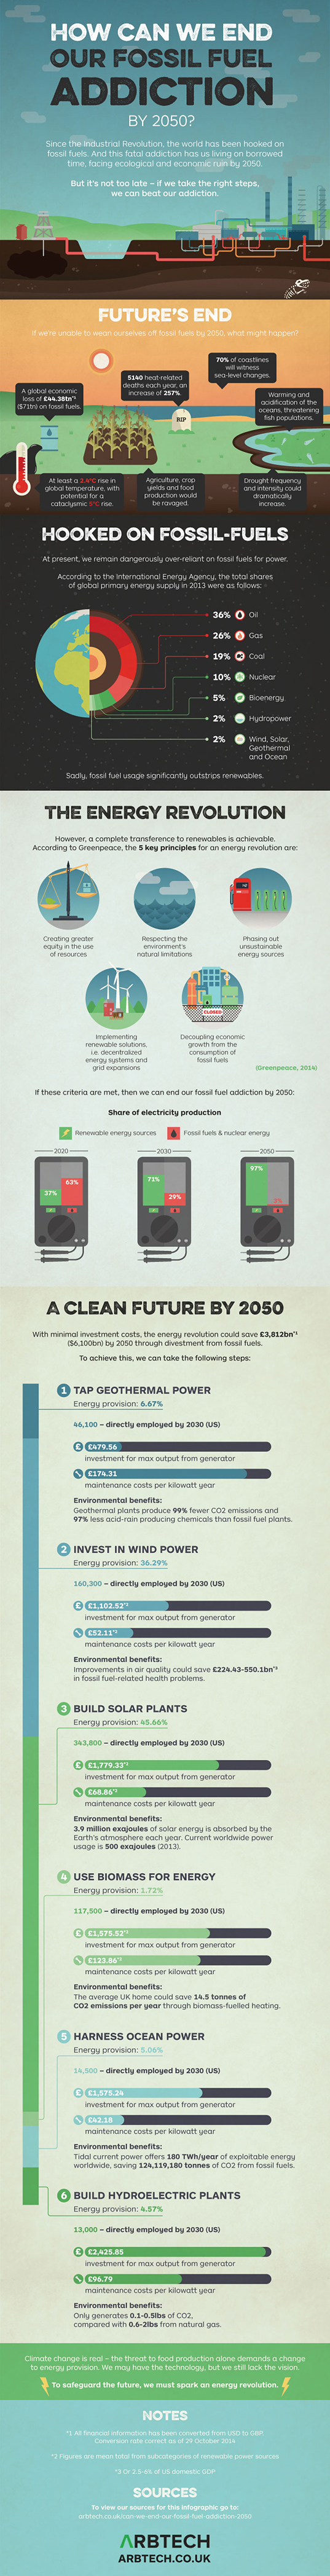 fossil fuel addiction, ending fossil fuel use, fossil fuels, carbon emissions, global warming, climate change, addressing climate change, fossil fuels climate change, climate change tipping point, reader submissions, infographics, climate change infographics, fossil fuel infographics